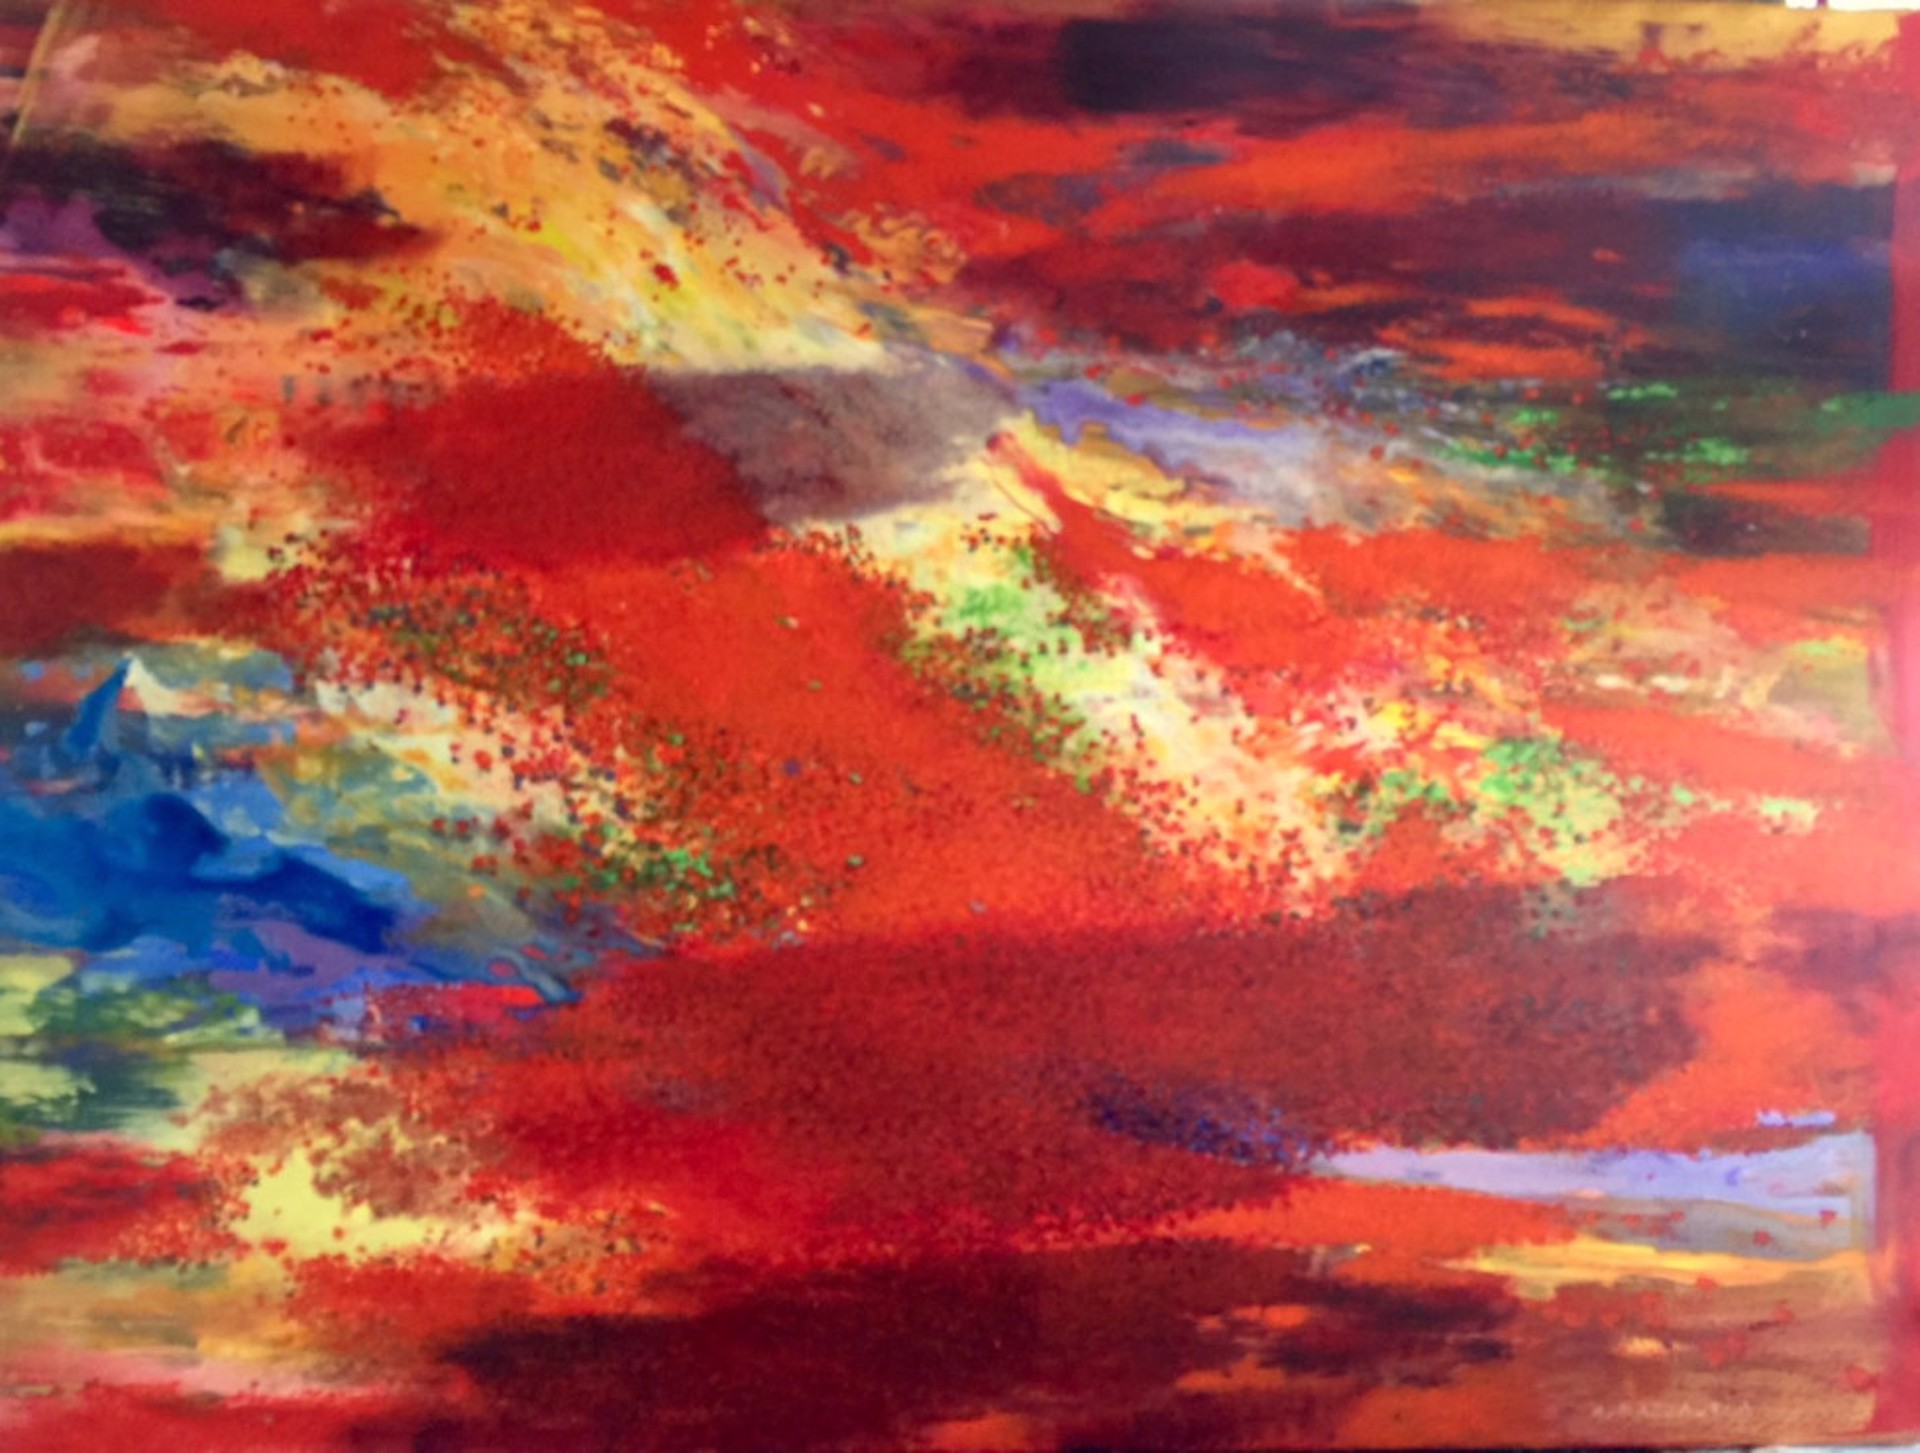 Passing Clouds (In The Poppy Field) by Andrea Razzauti